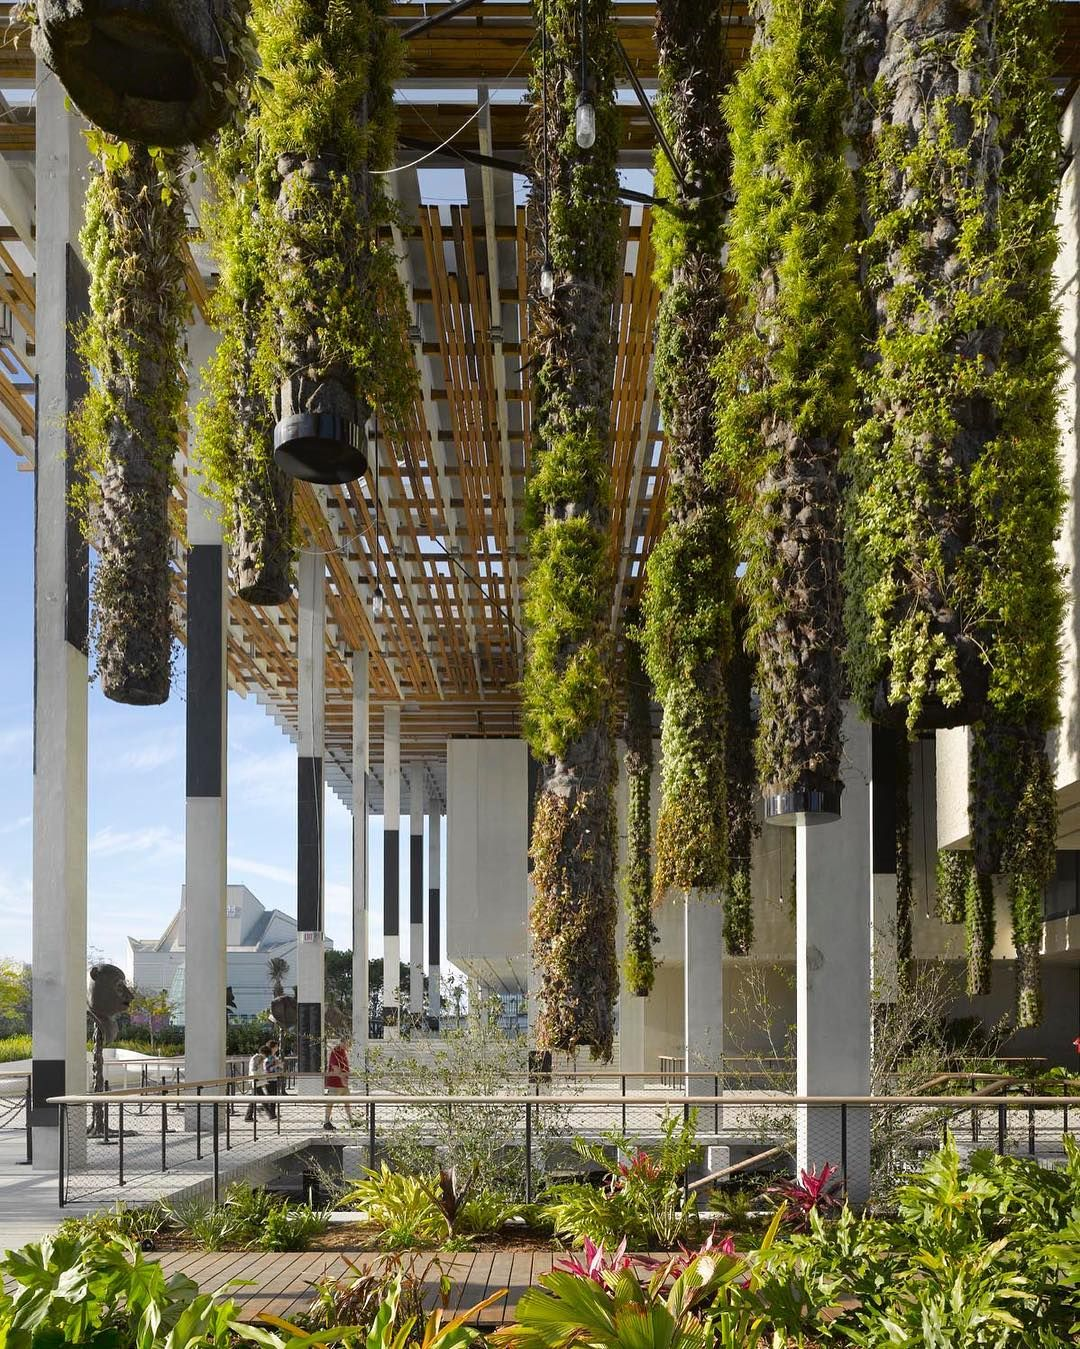 Vertical Gardening Is A Dead-Simple DIY Project That Any